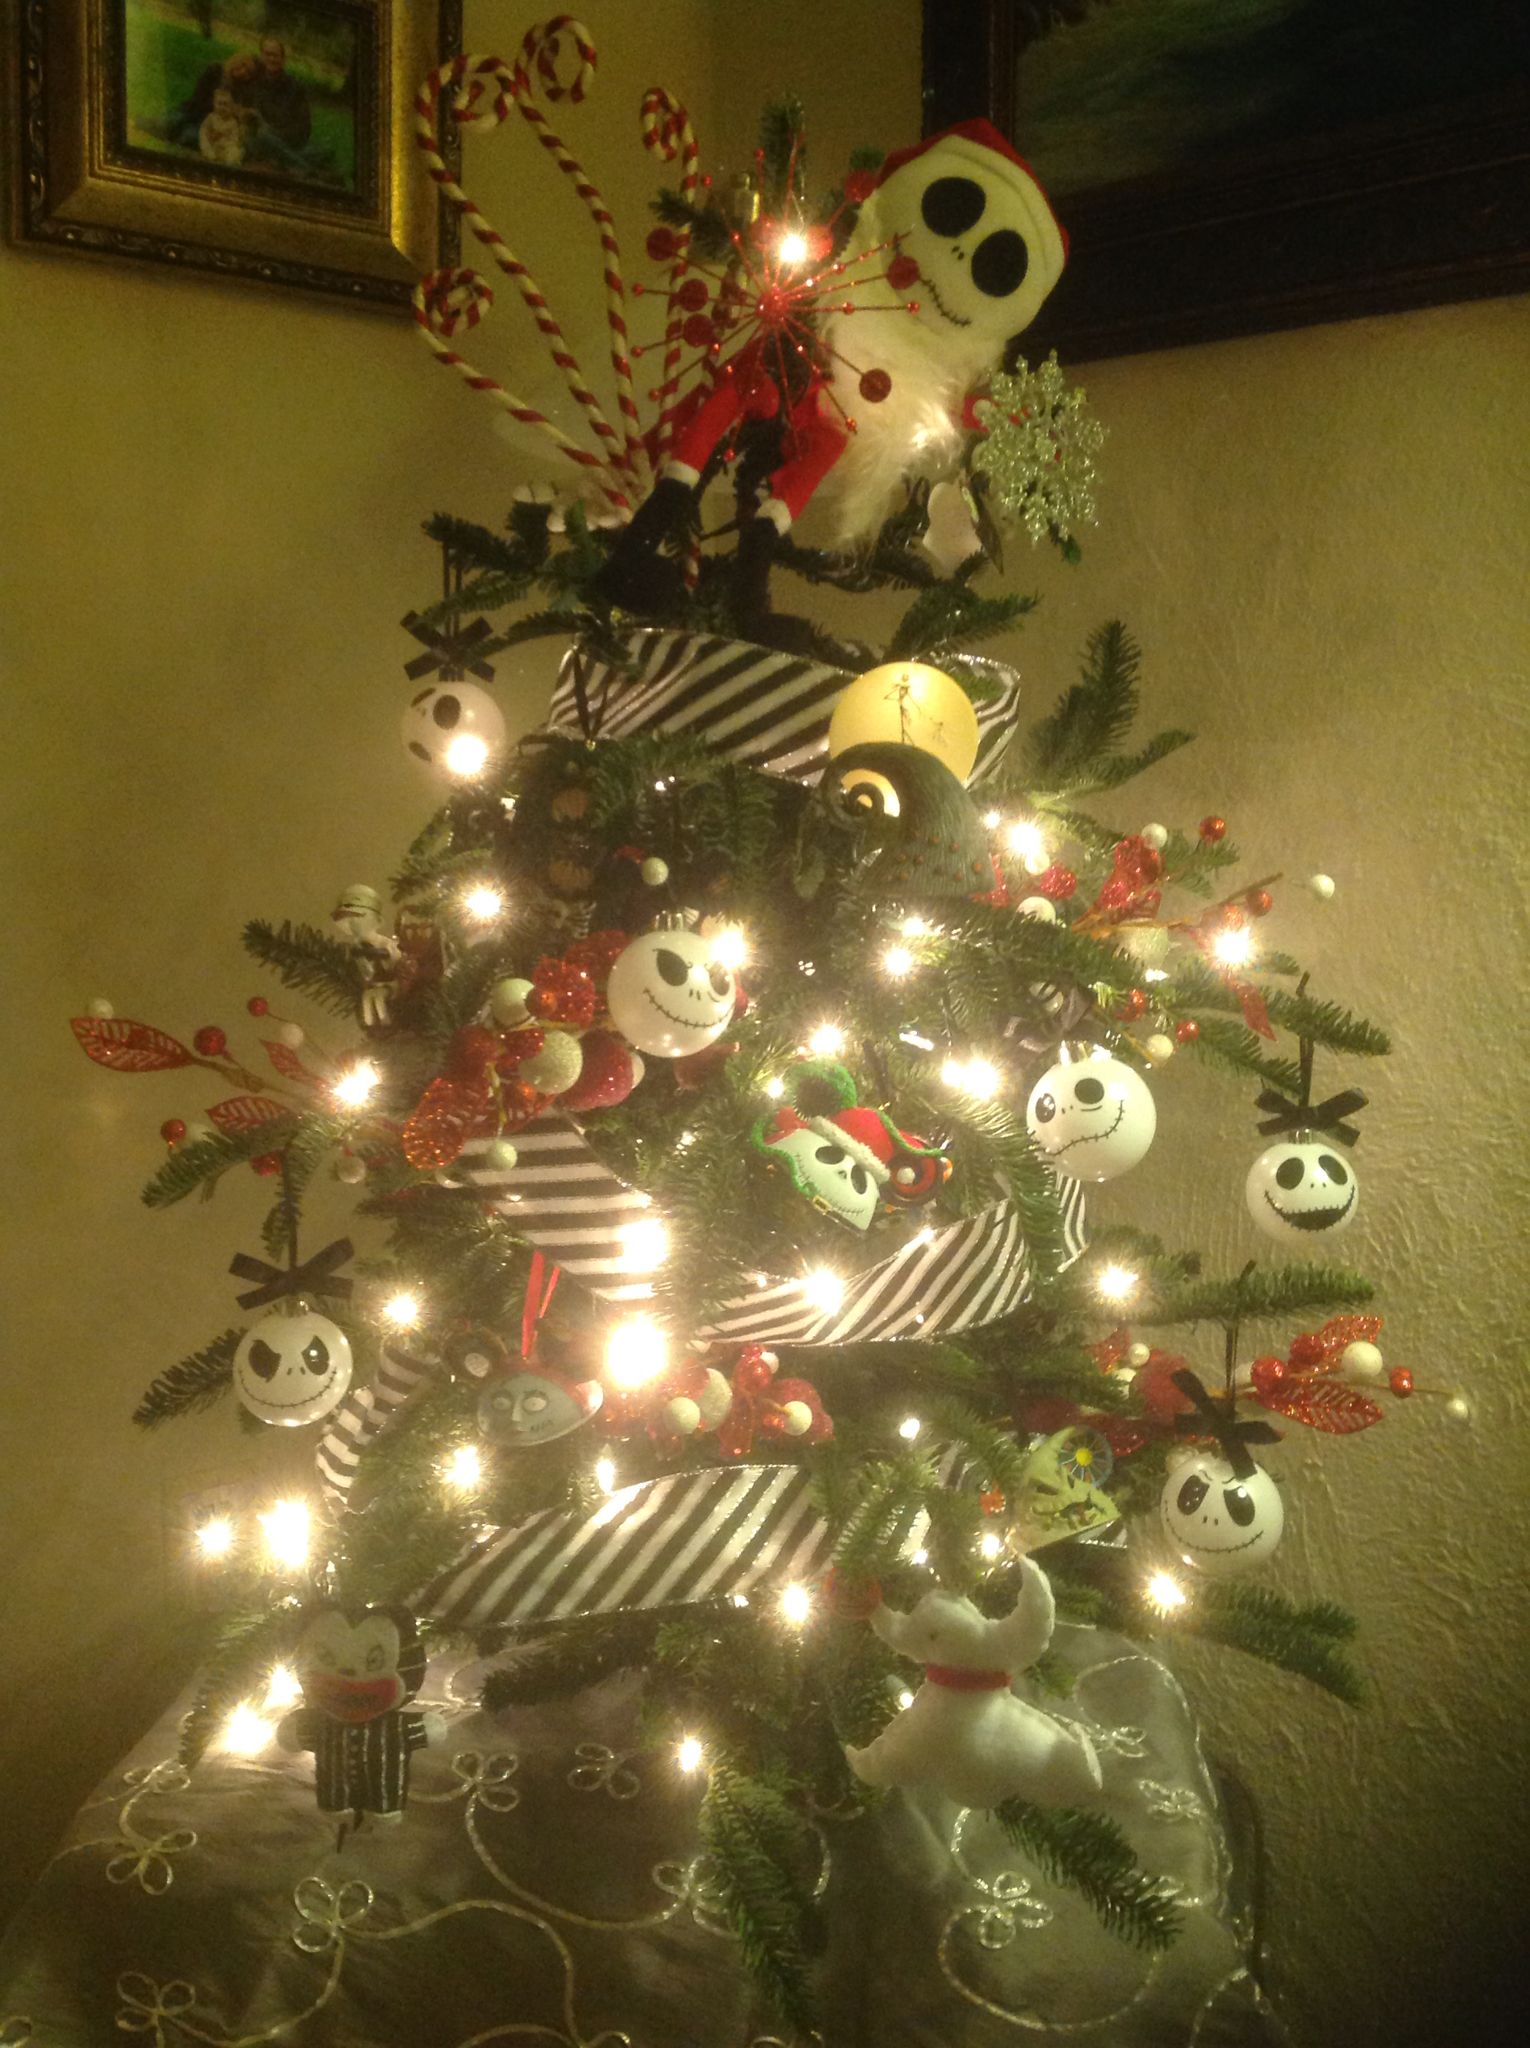 NIGHTMARE BEFORE CHRISTMAS TREE, JACK SKELLINGTON ORNAMENTS ...